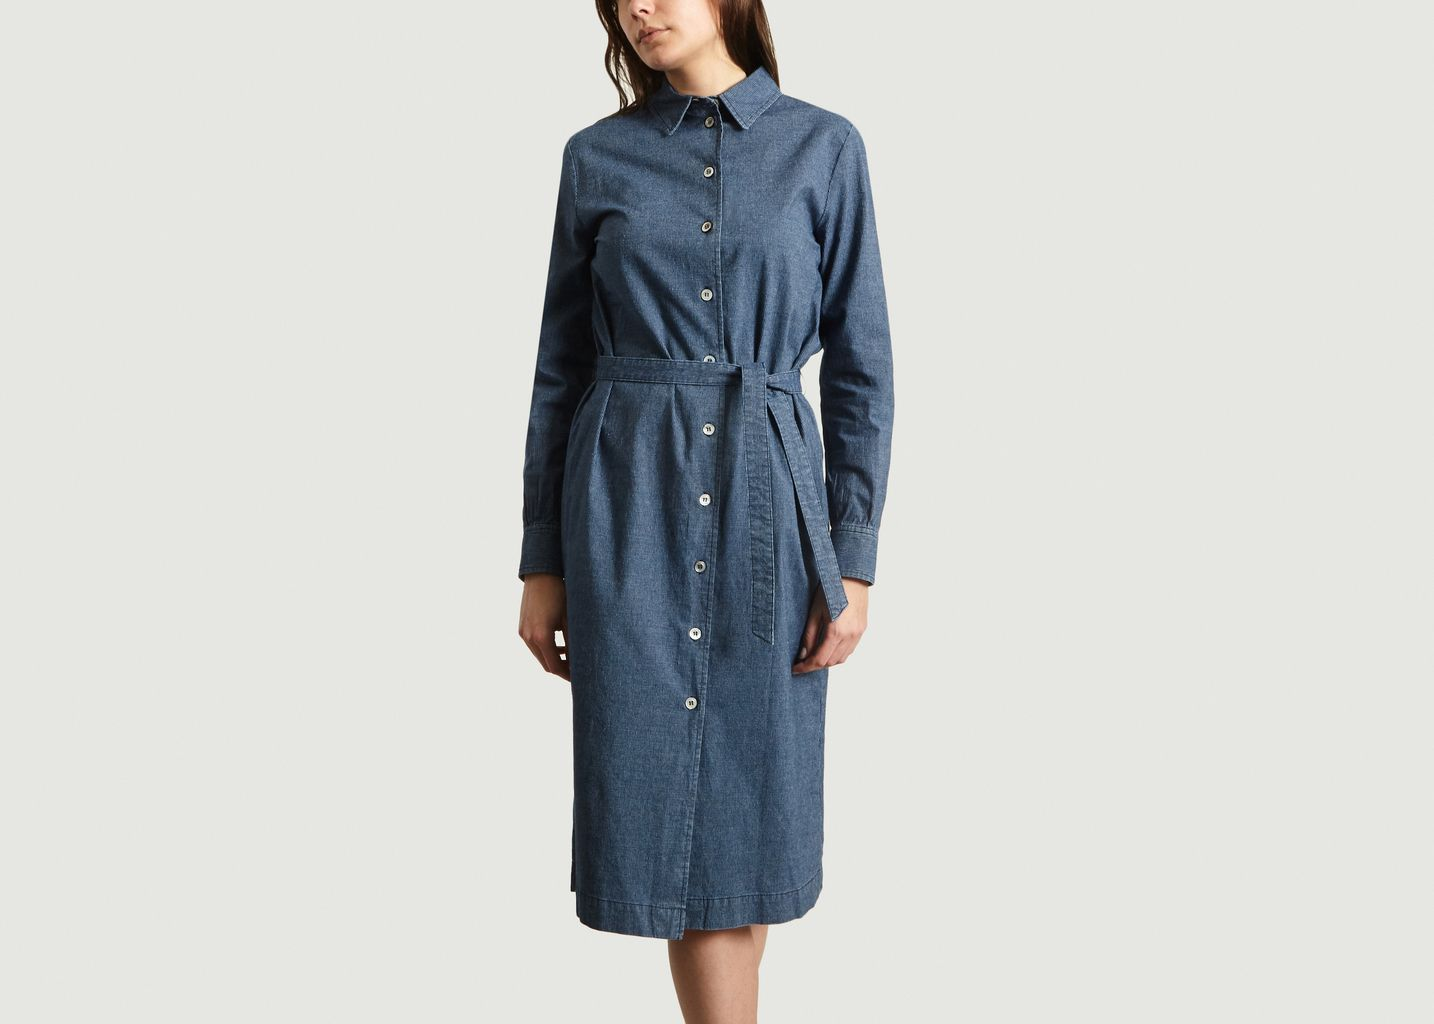 Robe-Chemise Finement Rayée Karen - A.P.C.